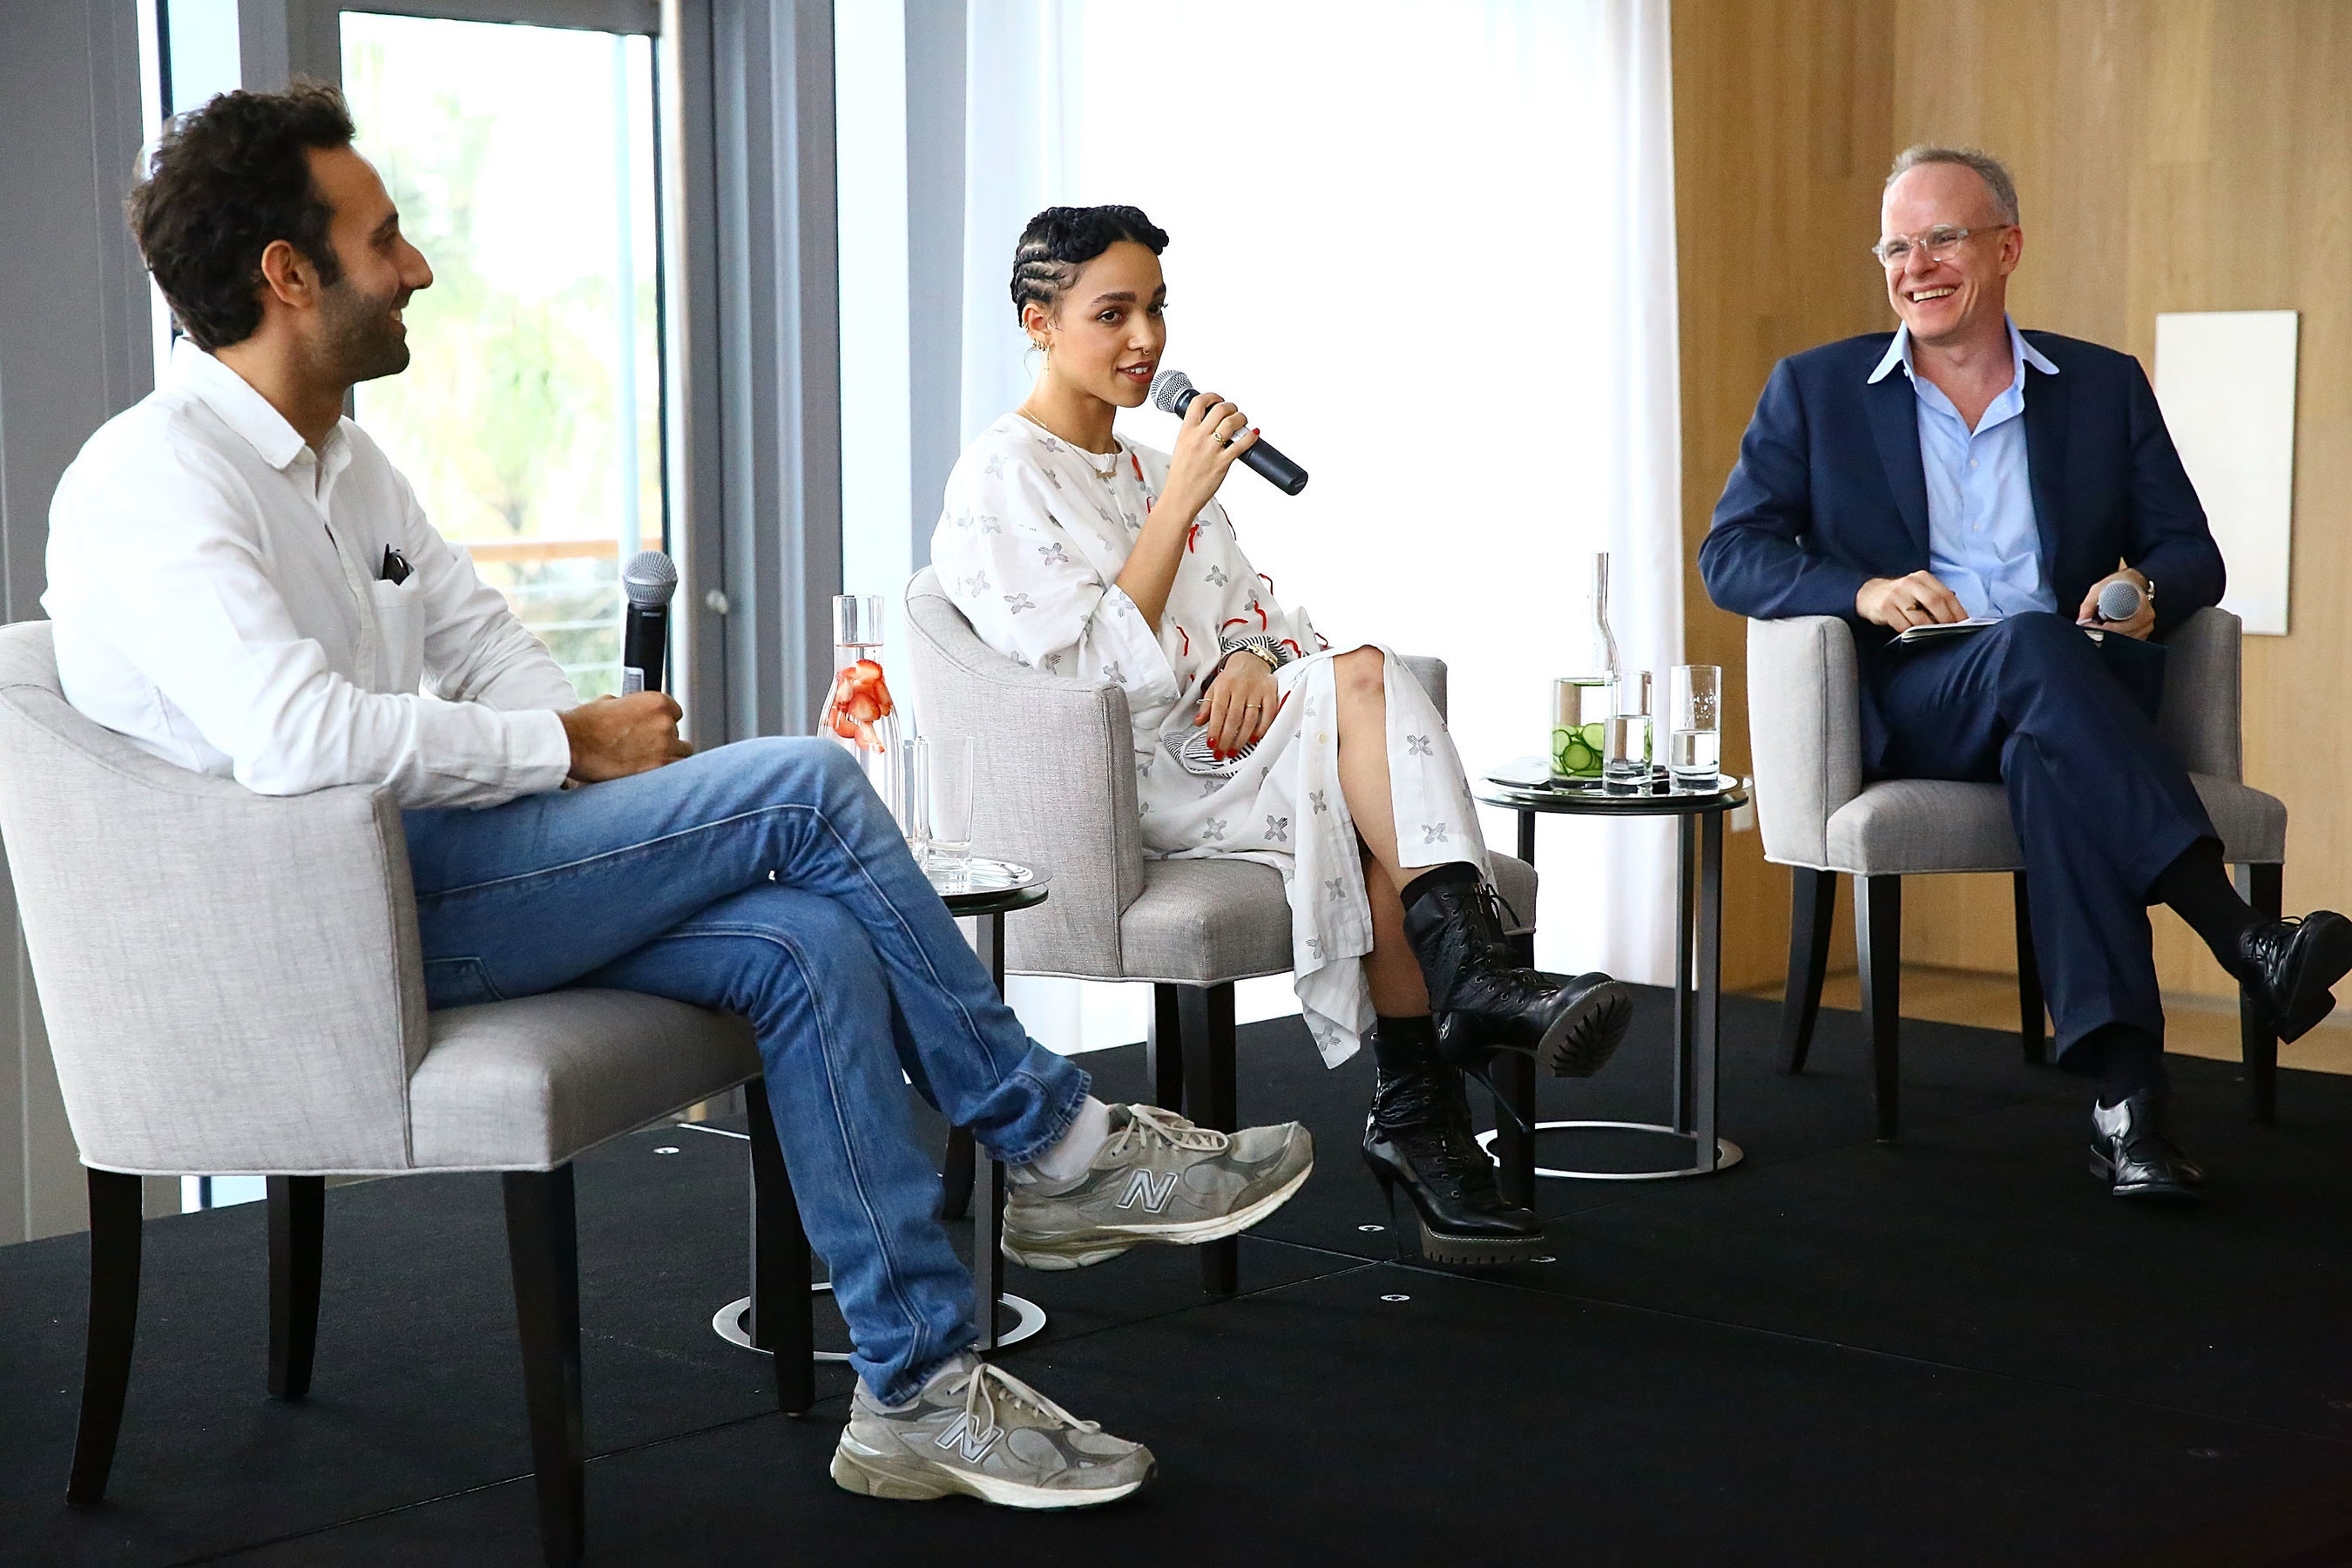 Surface and Hans Ulrich Obrist discuss the cross section of art and design with musician FKA Twigs and artist Alex Israel at The Miami Beach EDITION